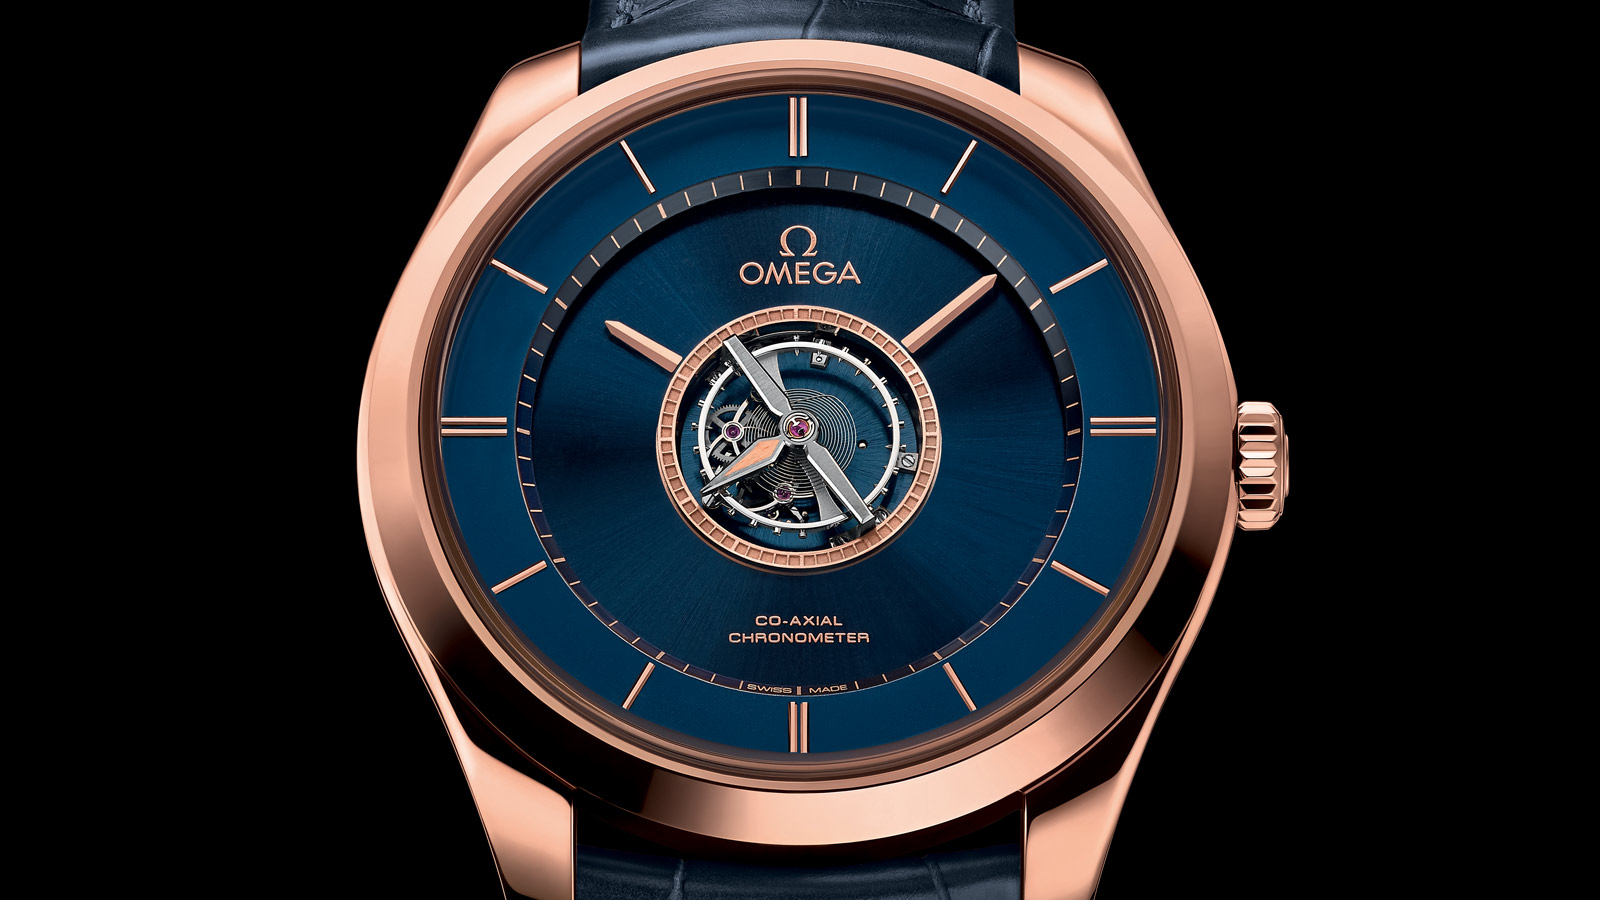 De Ville Tourbillon Tourbillon Co‑Axial Numbered Edition 44 mm - 528.53.44.21.03.001 - View 1